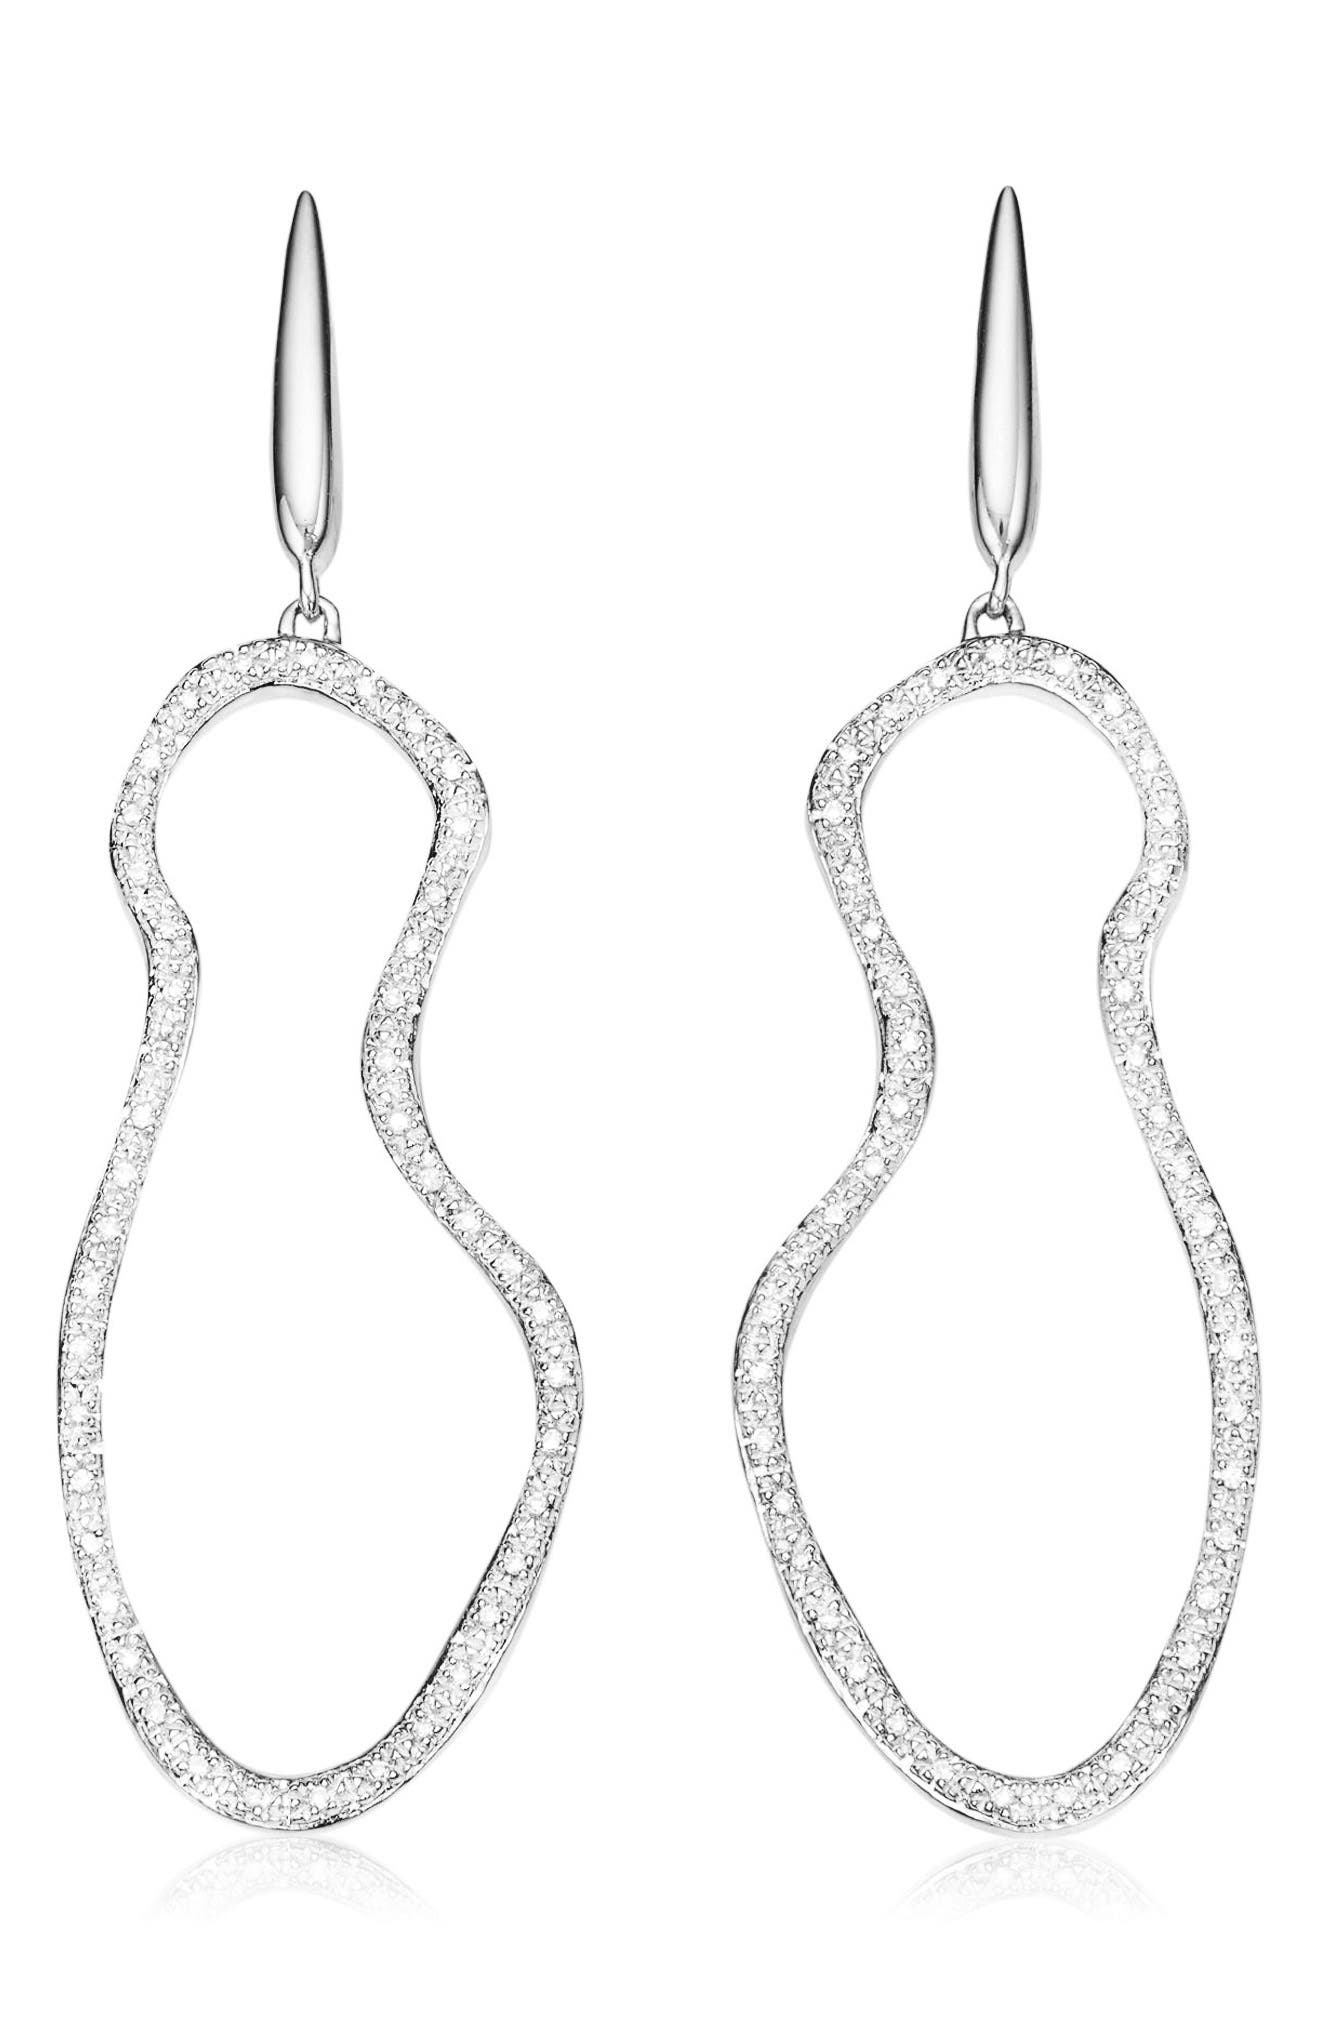 Riva Pod Diamond Cocktail Earrings,                         Main,                         color, Silver